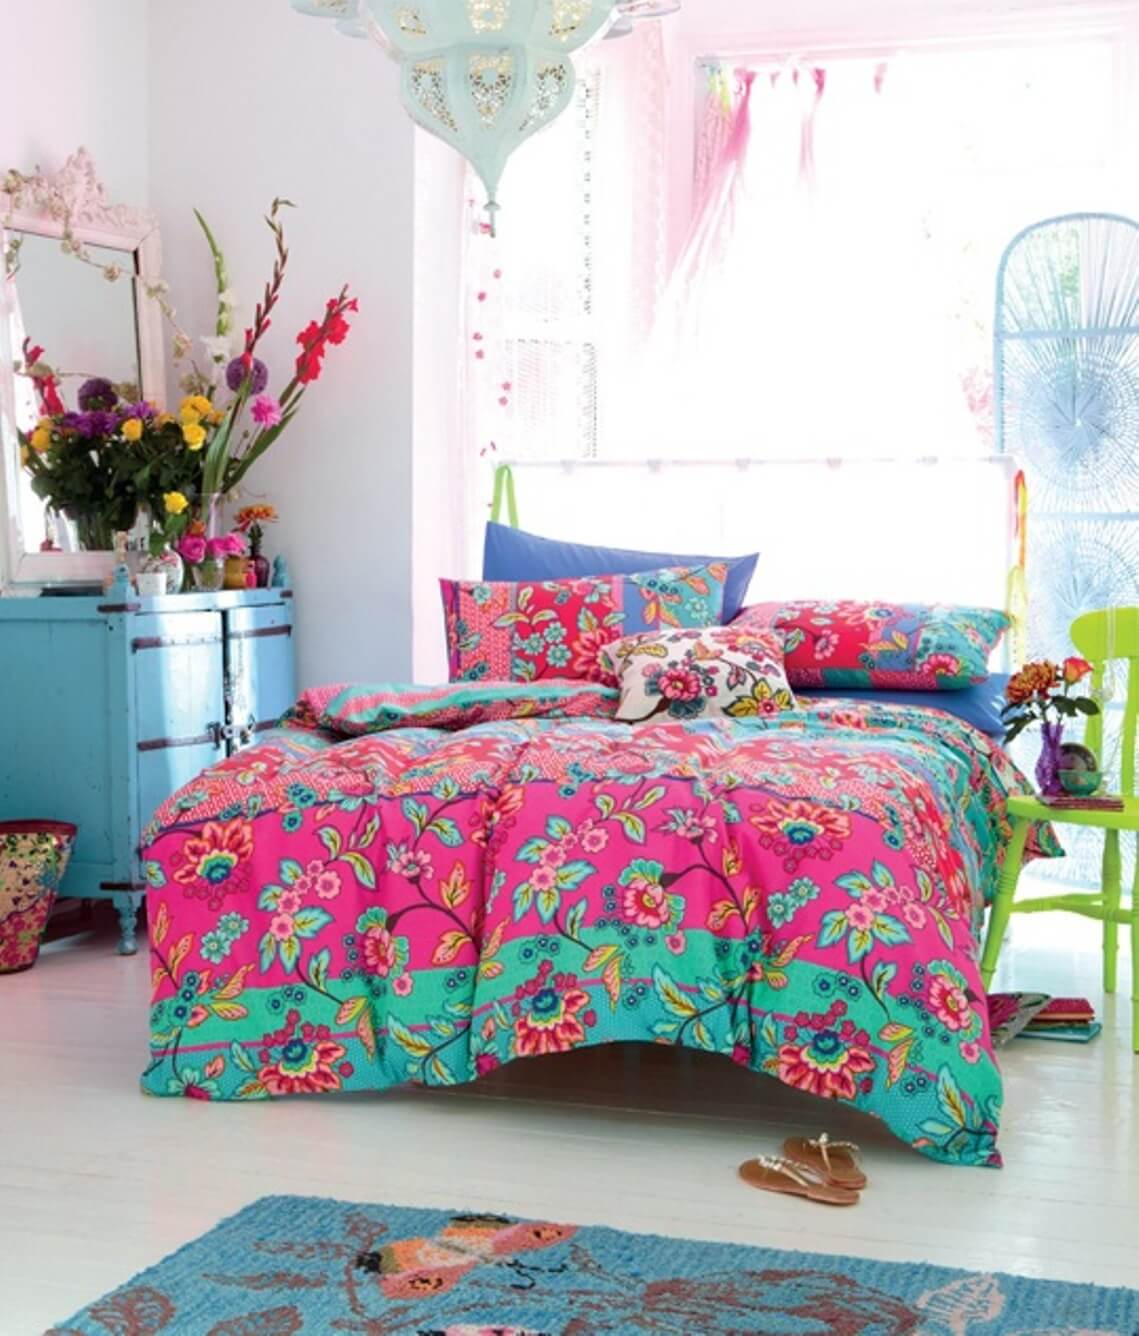 Colorful Bedroom: 8 Bohemian Chic Teen Girl's Bedroom Ideas